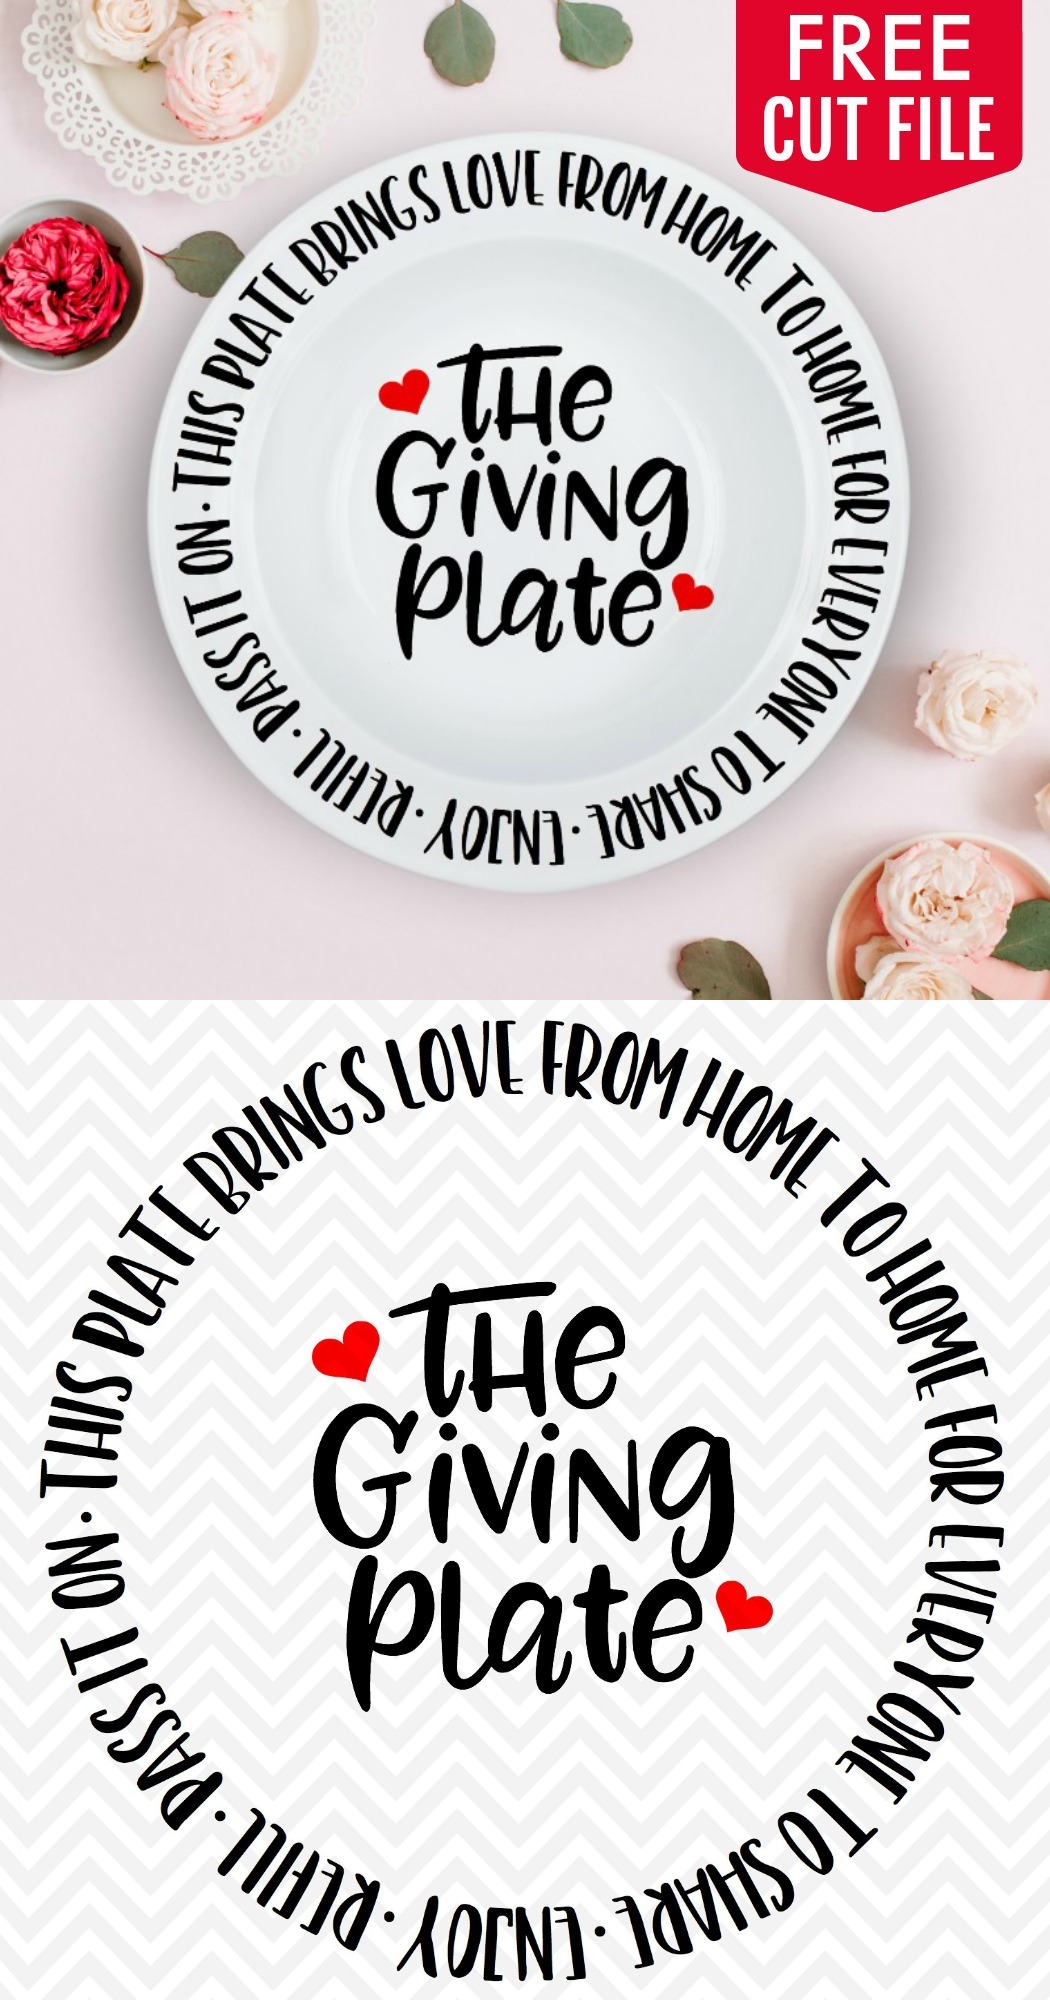 https://www.happygoluckyblog.com/wp-content/uploads/2019/02/The-Giving-Plate-Free-SVG-Cut-File-Collage.jpg